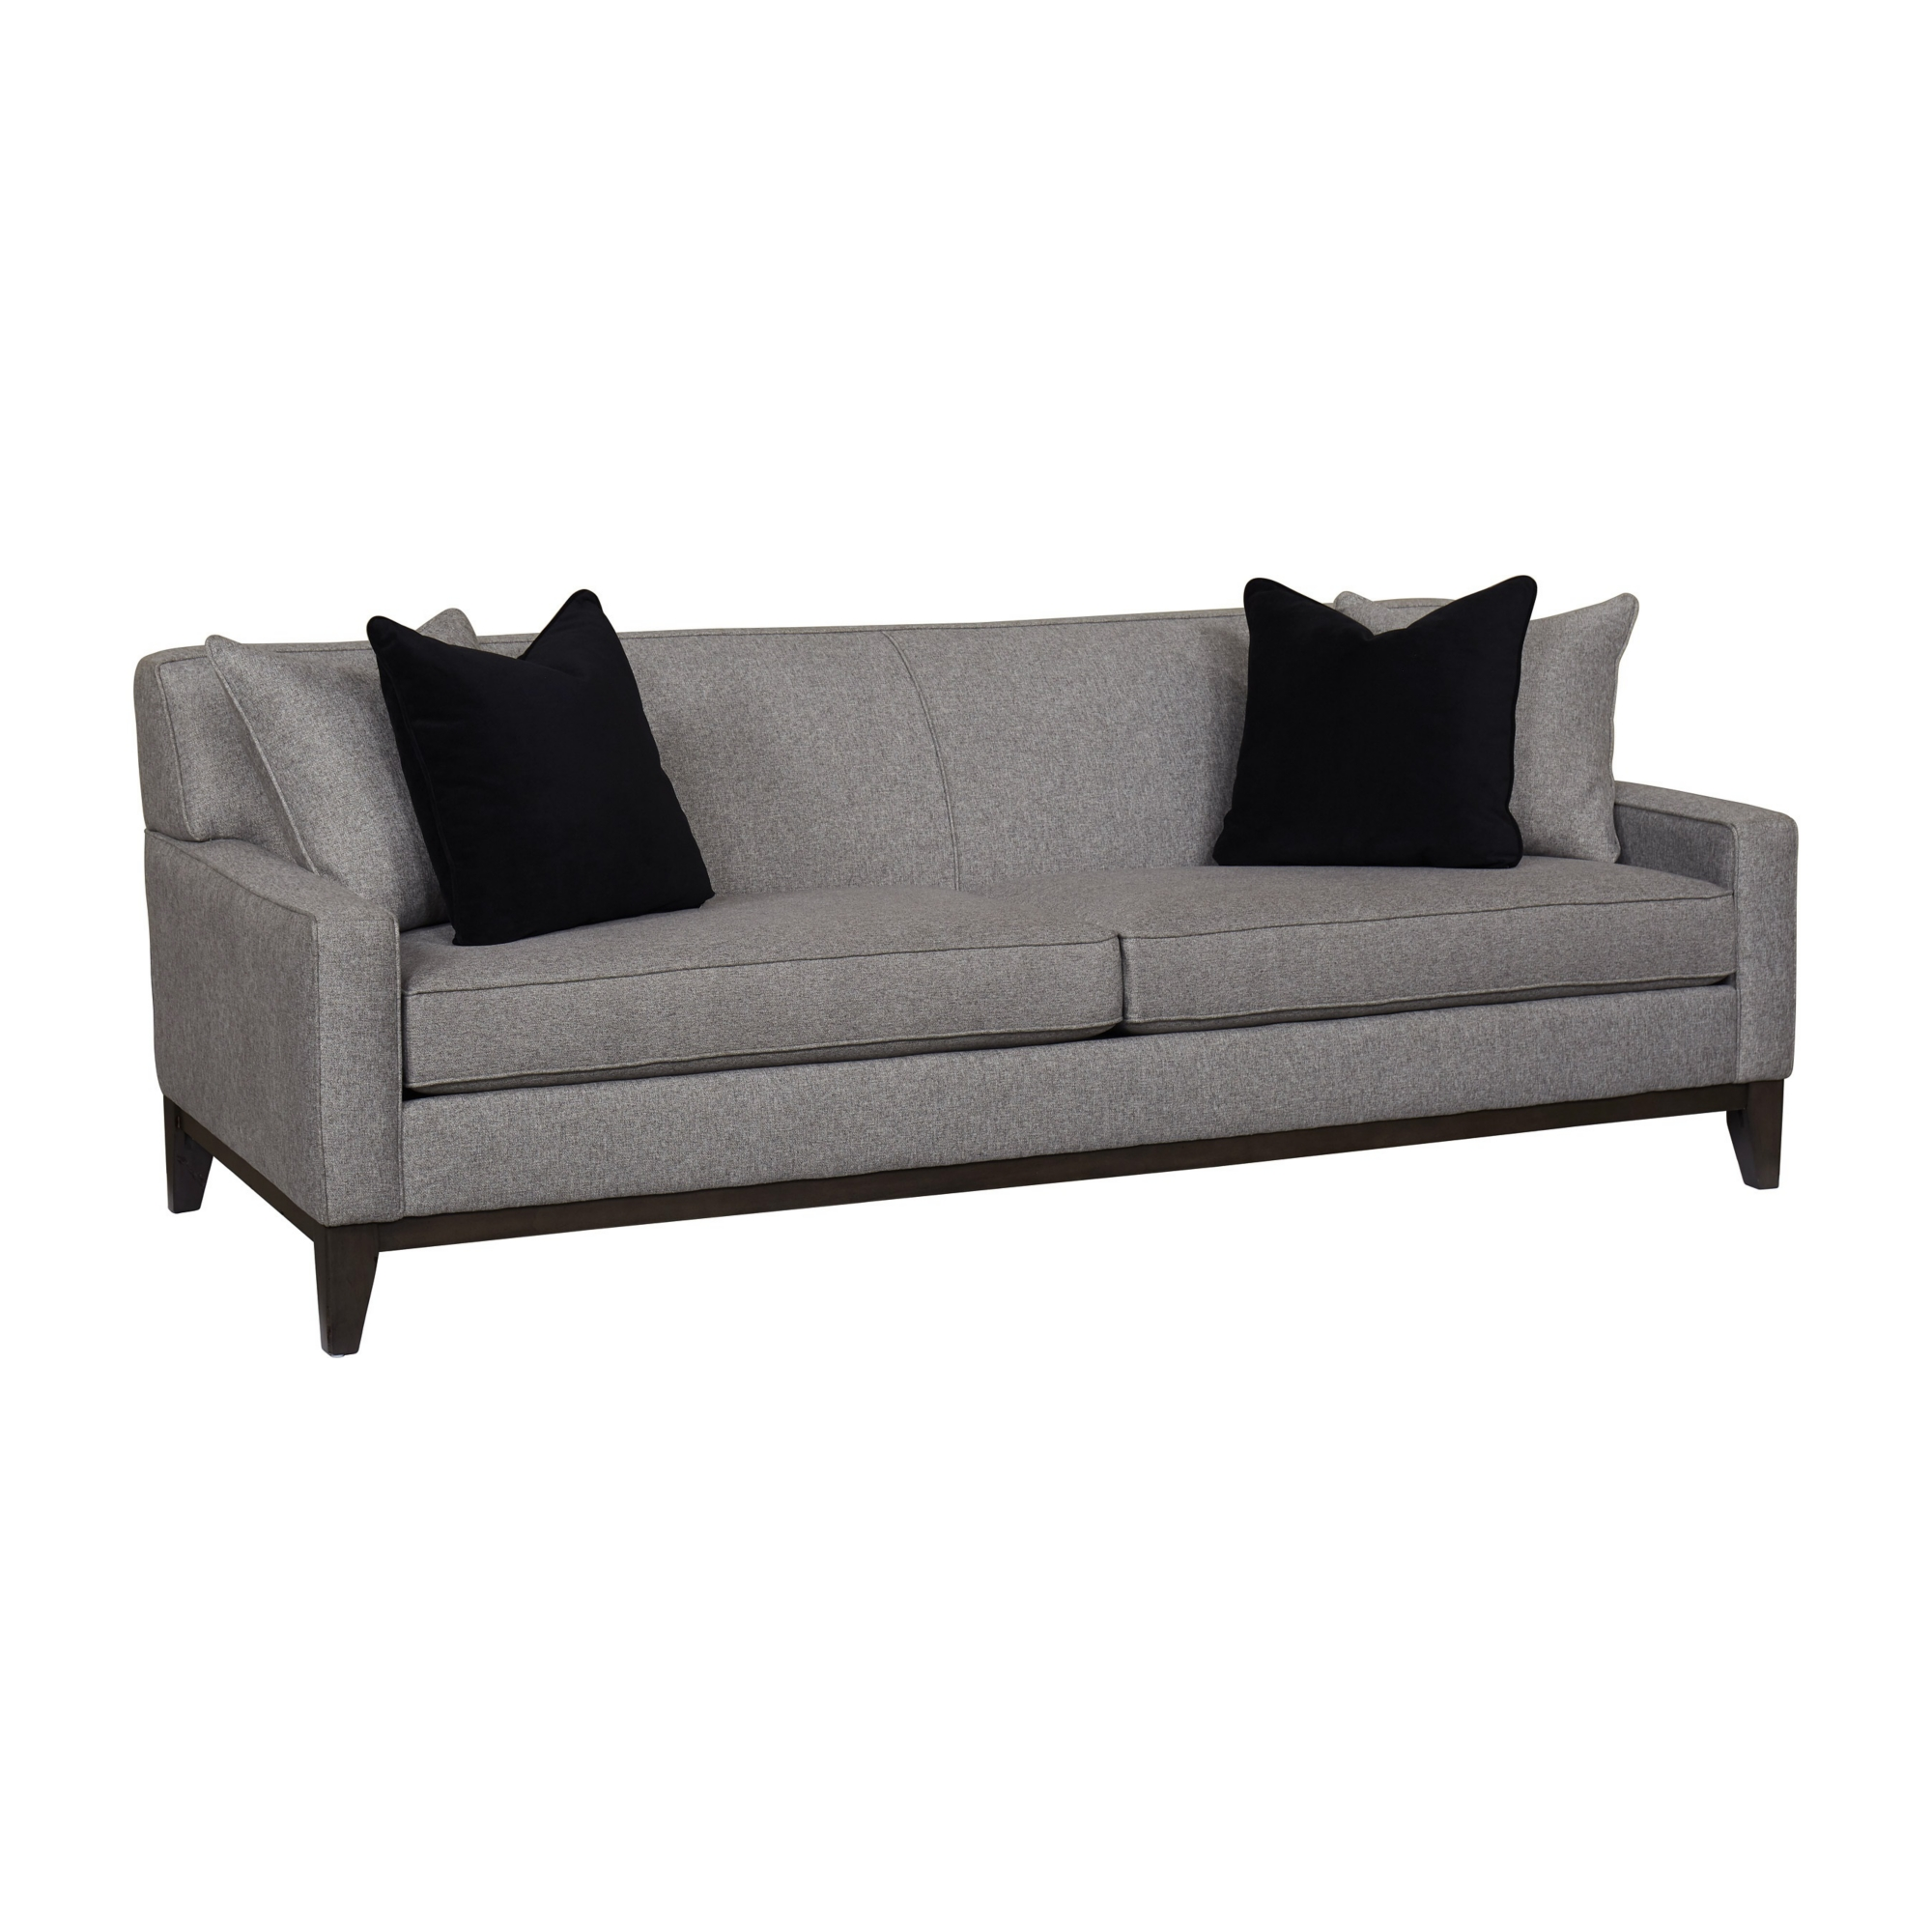 Renee Grand Xl Sofa Find The Perfect